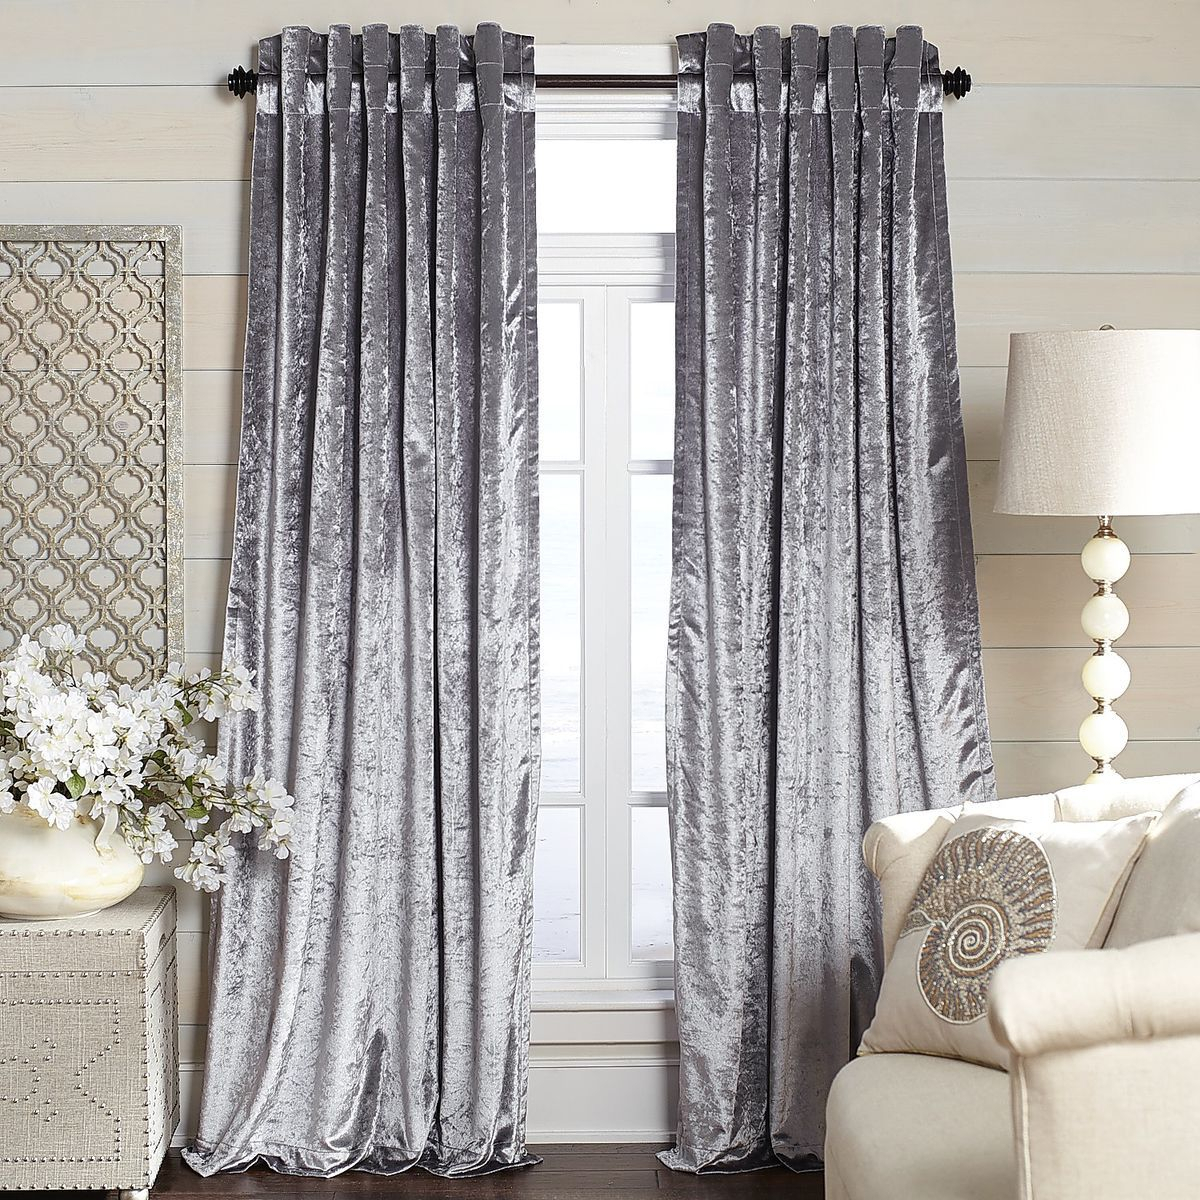 Metallic Velvet Curtain – Silver | Pier 1 Imports Intended For Velvet Dream Silver Curtain Panel Pairs (View 4 of 31)